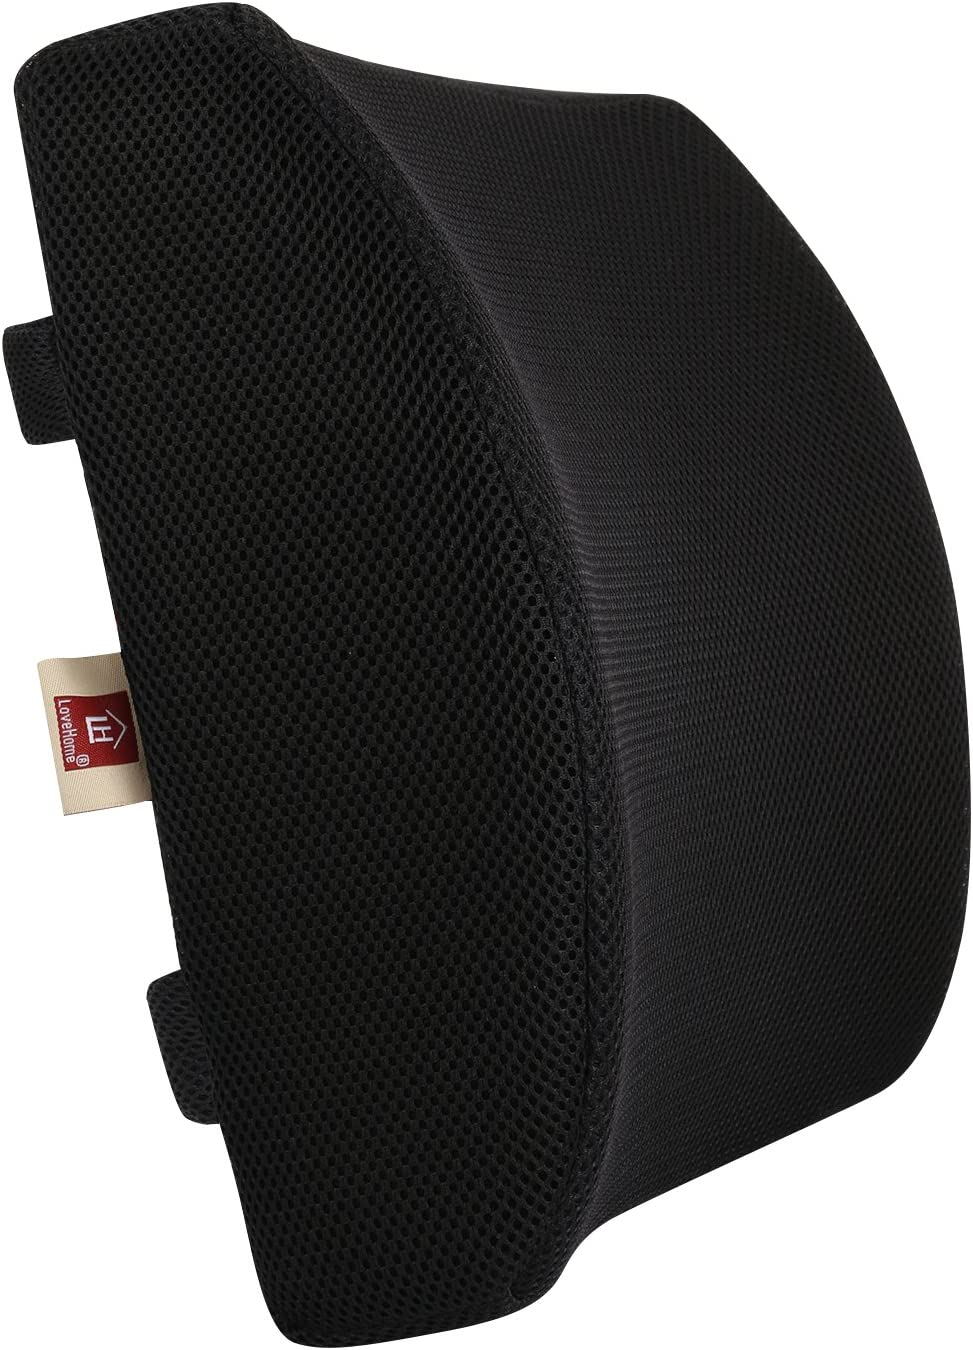 LoveHome Memory Foam Lumbar Support Back Cushion with 3D Mesh Cover Balanced Firmness Designed for Lower Back Pain Relief- Ideal Back Pillow for Computer/Office Chair, Car Seat, Recliner etc. - Black